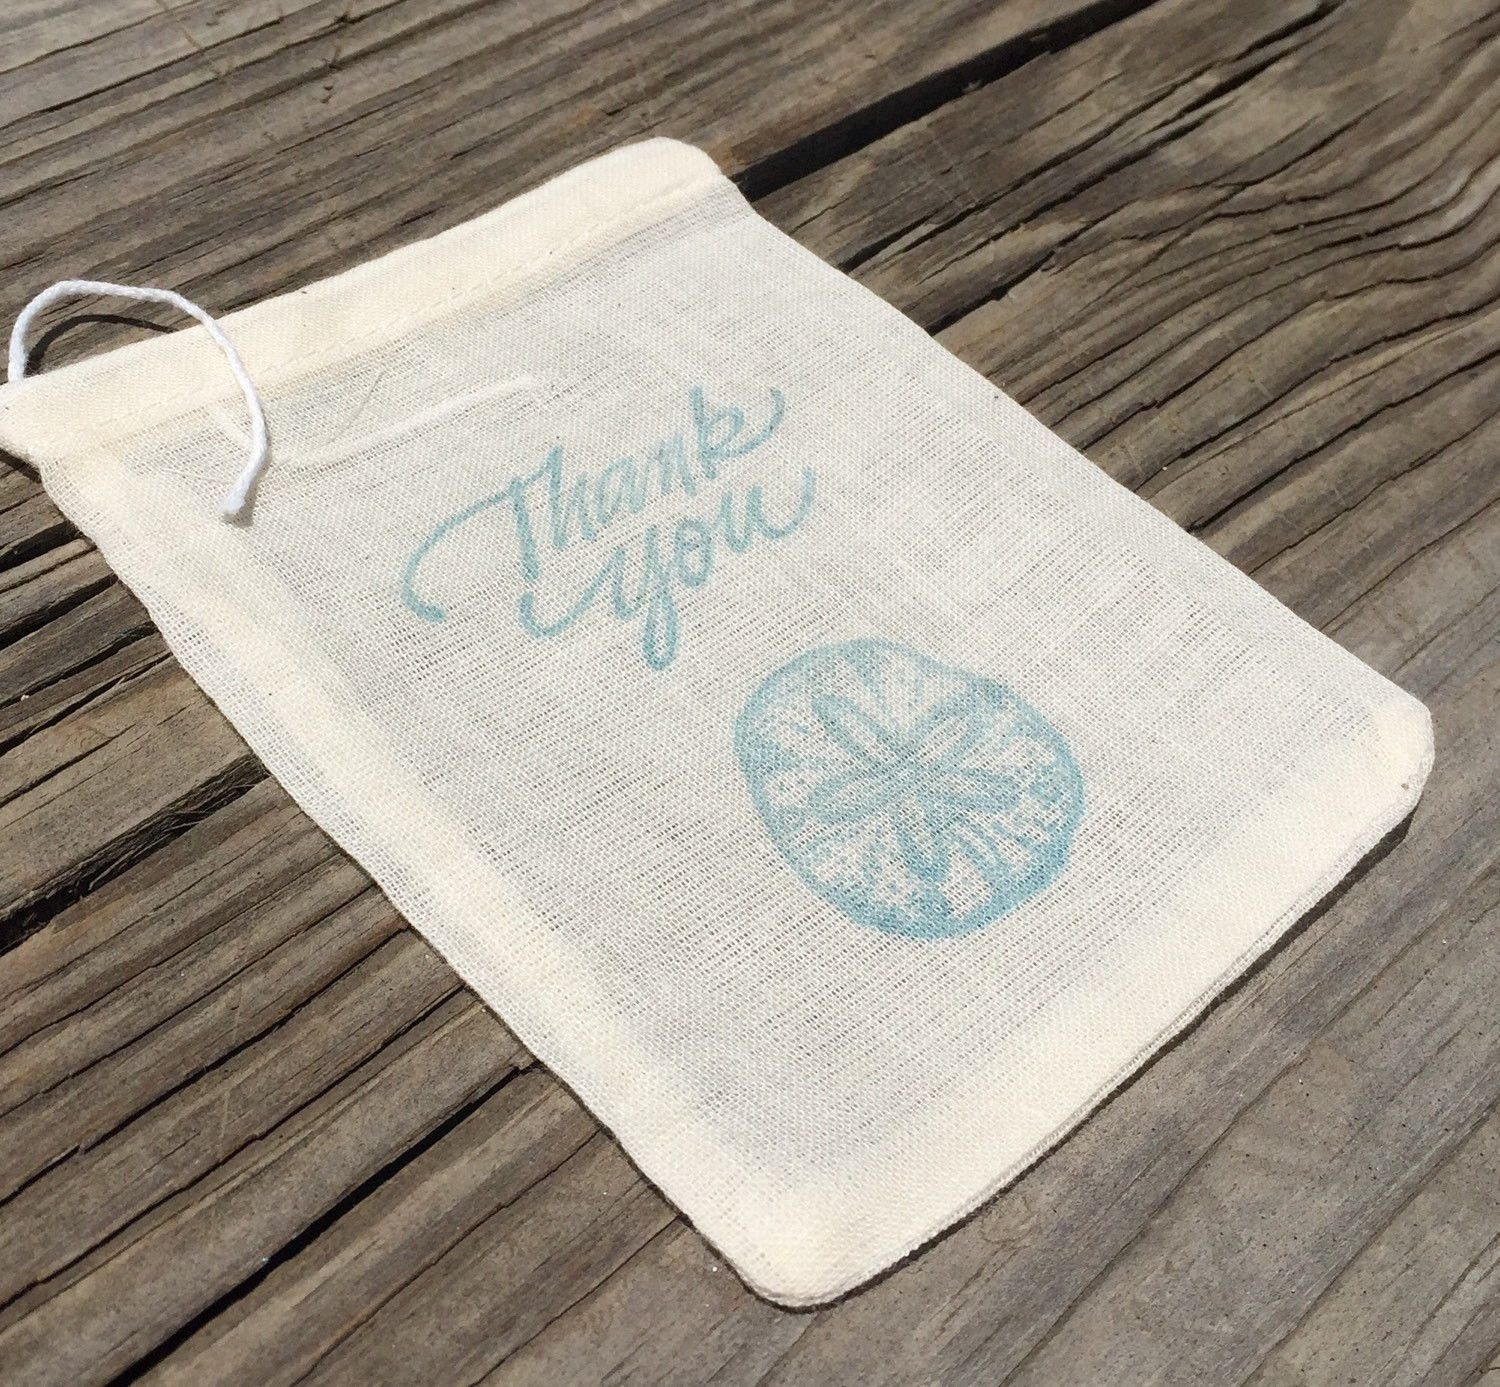 ideas for beach wedding party favors%0A    Mini sand dollar thank you bags  beach wedding thank you bags  sea shell  favor bags  beach wedding ideas  sand dollar favors